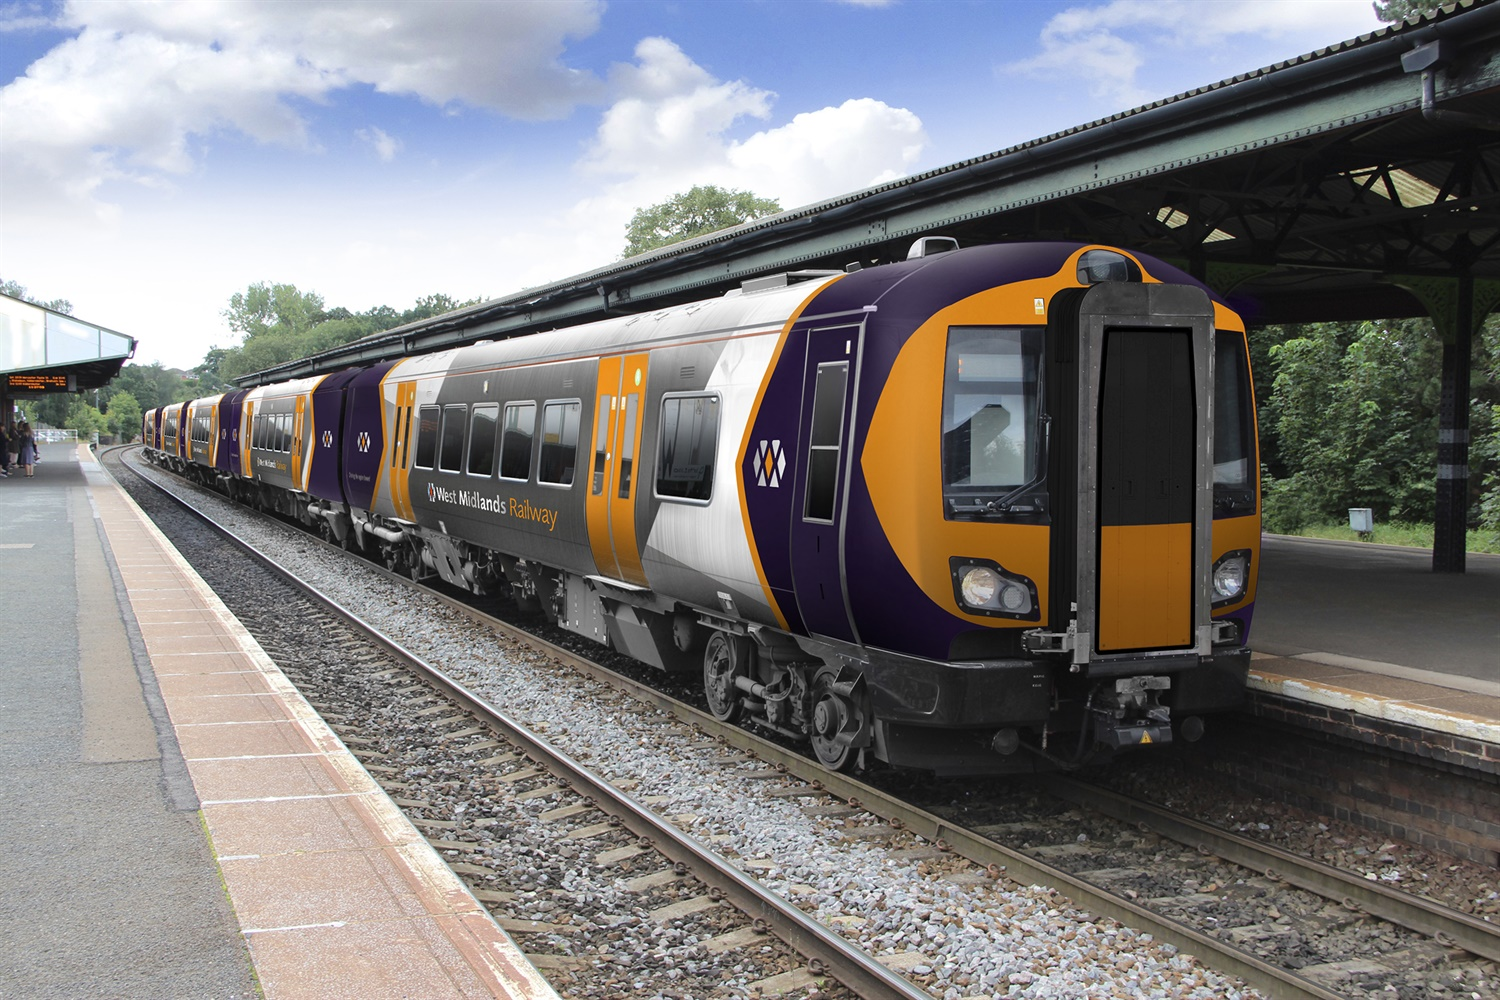 Southern owner loses West Midlands rail franchise